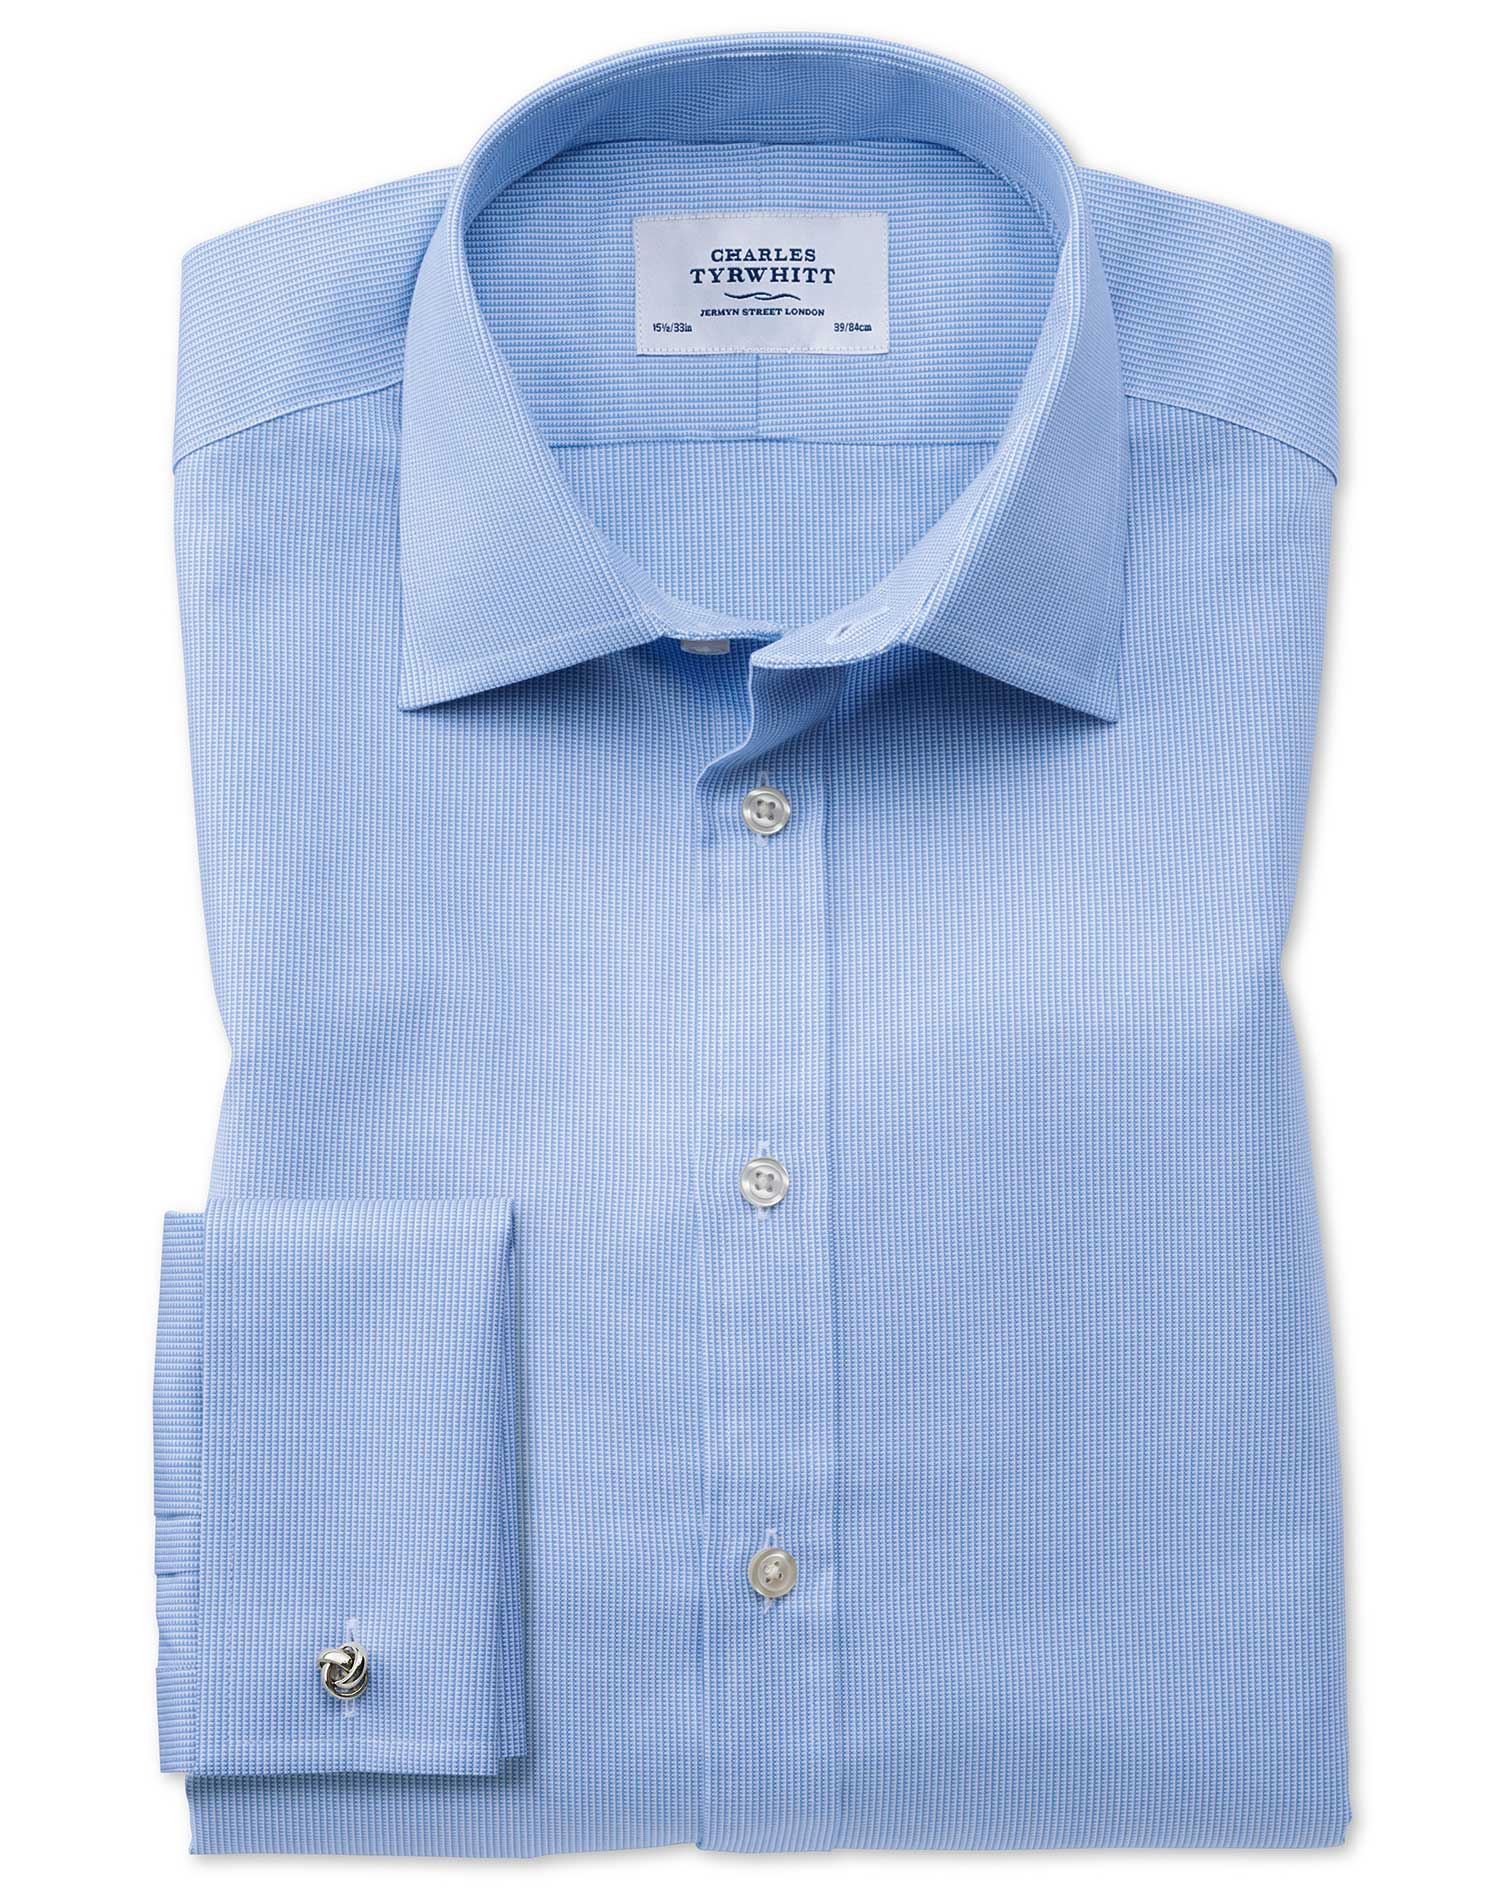 Classic Fit Oxford Sky Blue Cotton Formal Shirt Double Cuff Size 15.5/37 by Charles Tyrwhitt